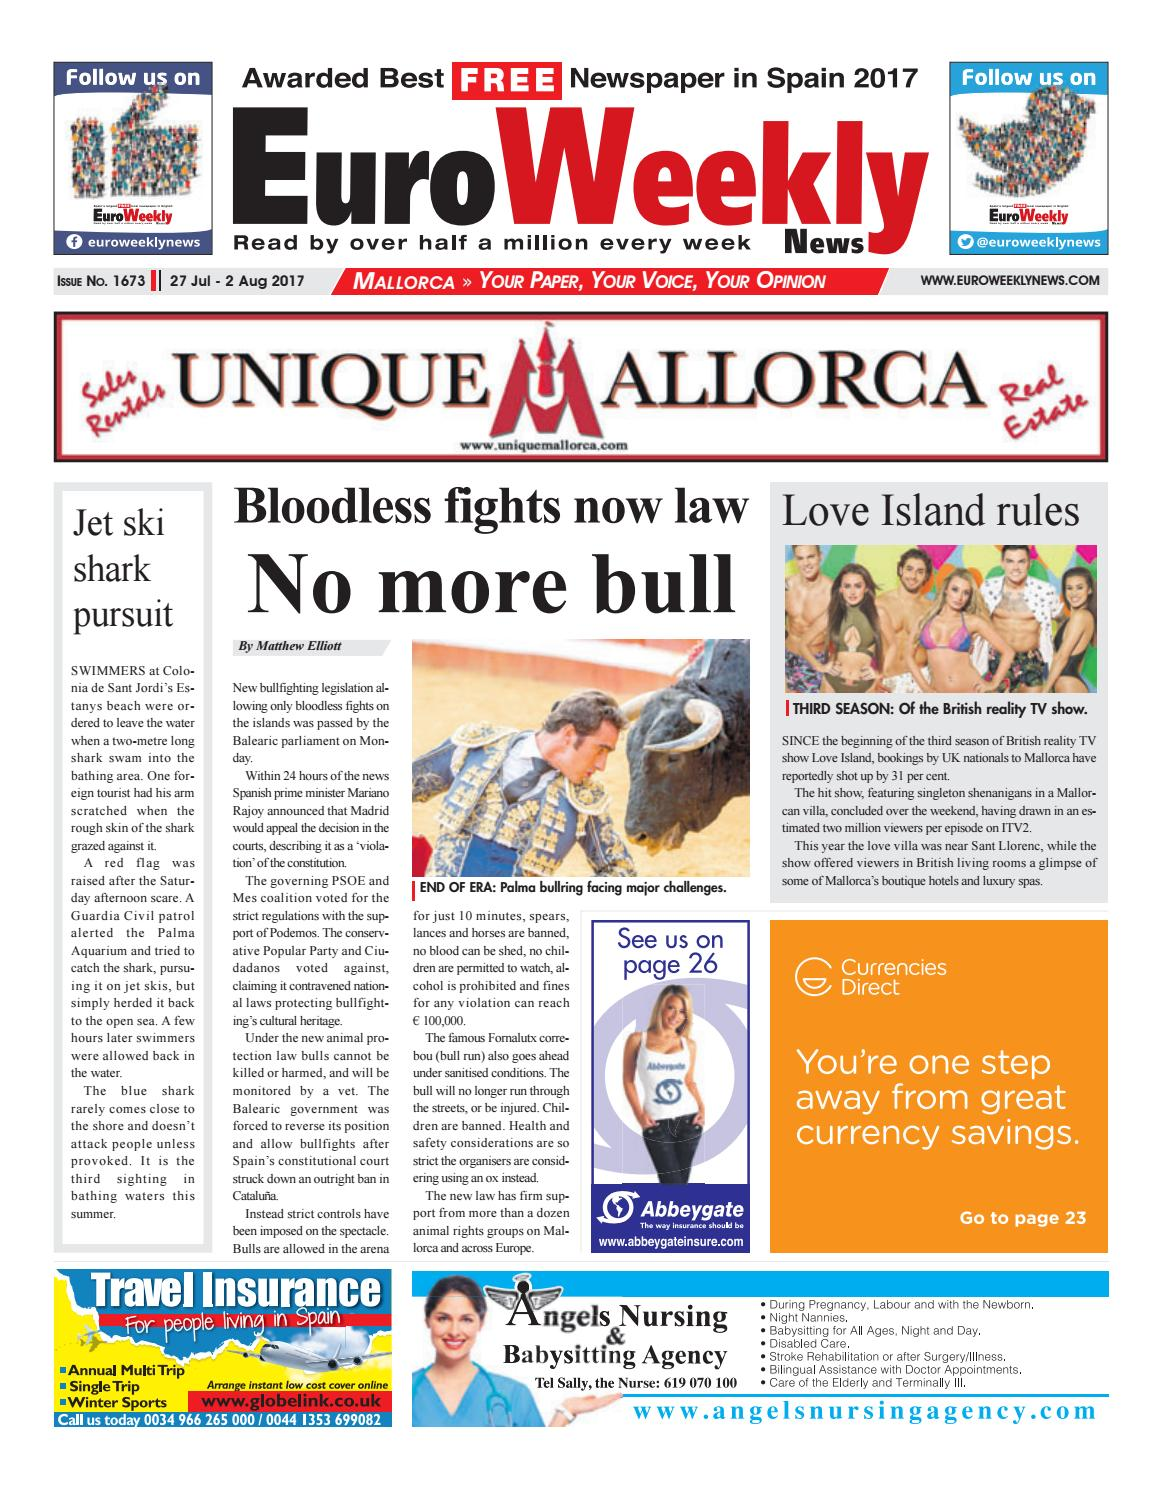 Euro weekly news mallorca 27 july 2 august 2017 issue 1673 by euro weekly news mallorca 27 july 2 august 2017 issue 1673 by euro weekly news media sa issuu fandeluxe Image collections